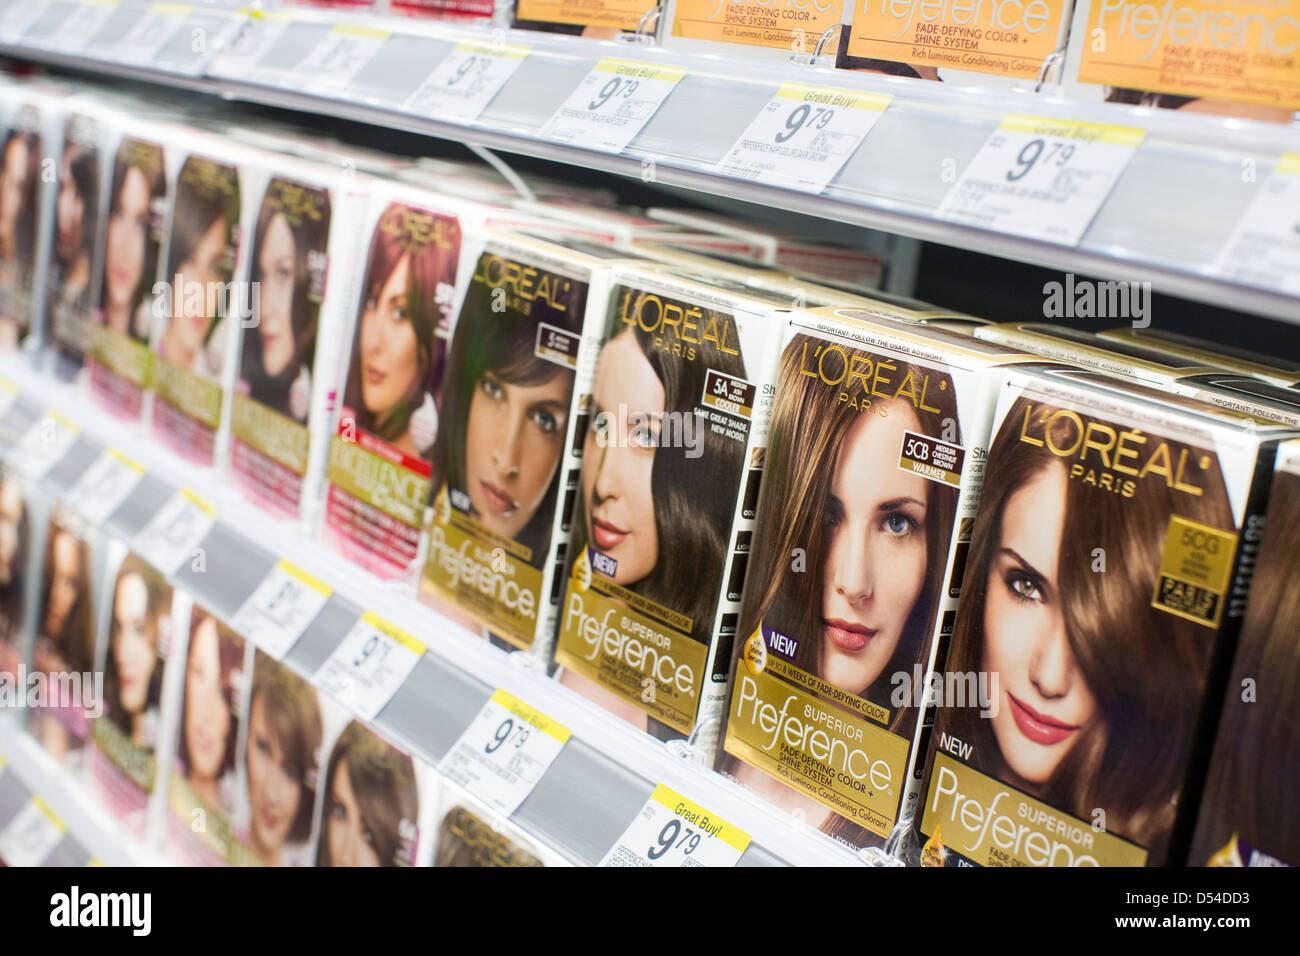 Loreal Products Stock Photos Loreal Products Stock Images Alamy